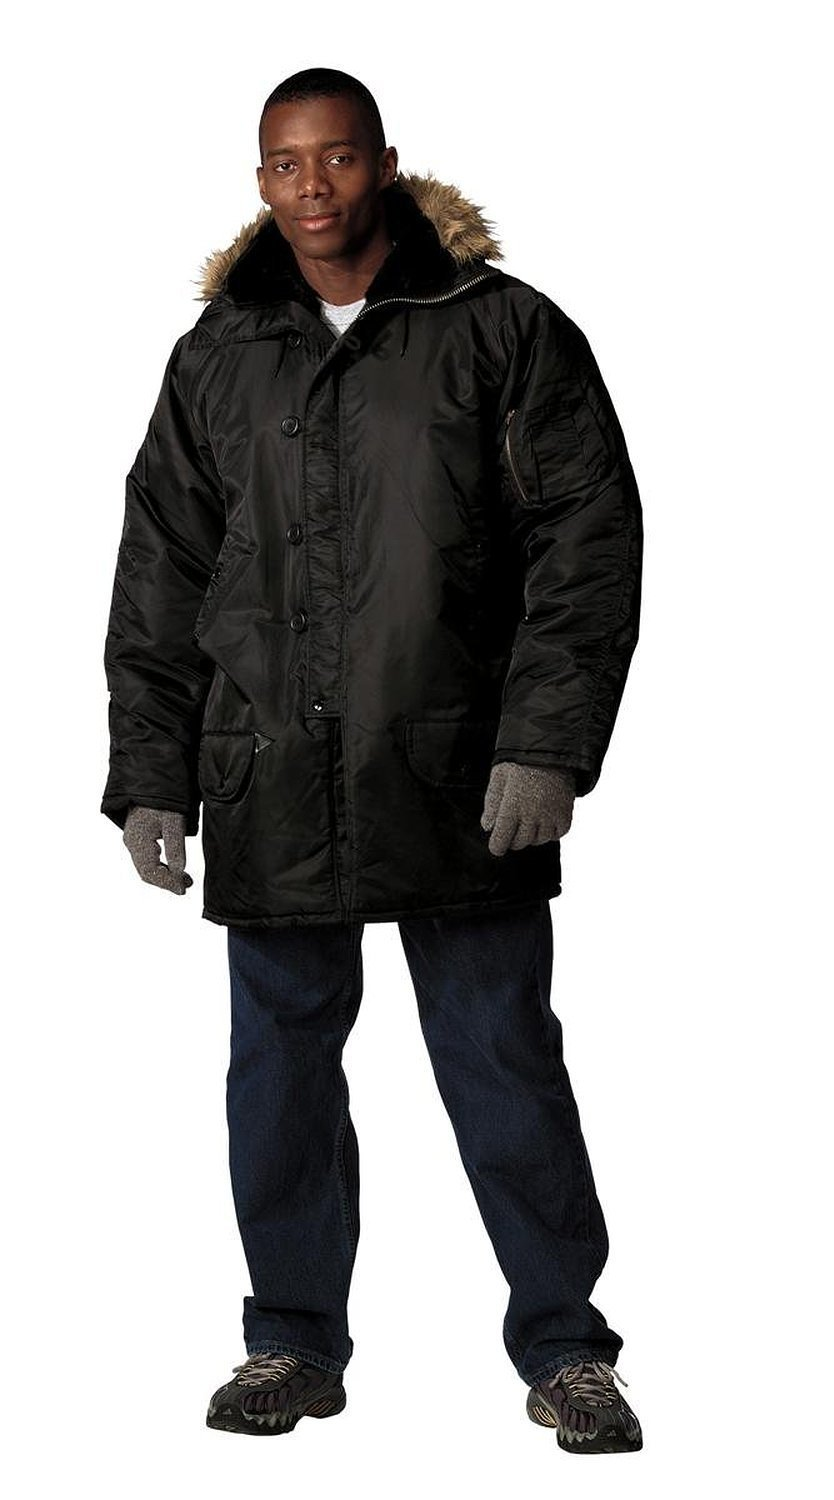 Amazon.com : Rothco N-3B Parka : Sports & Outdoors